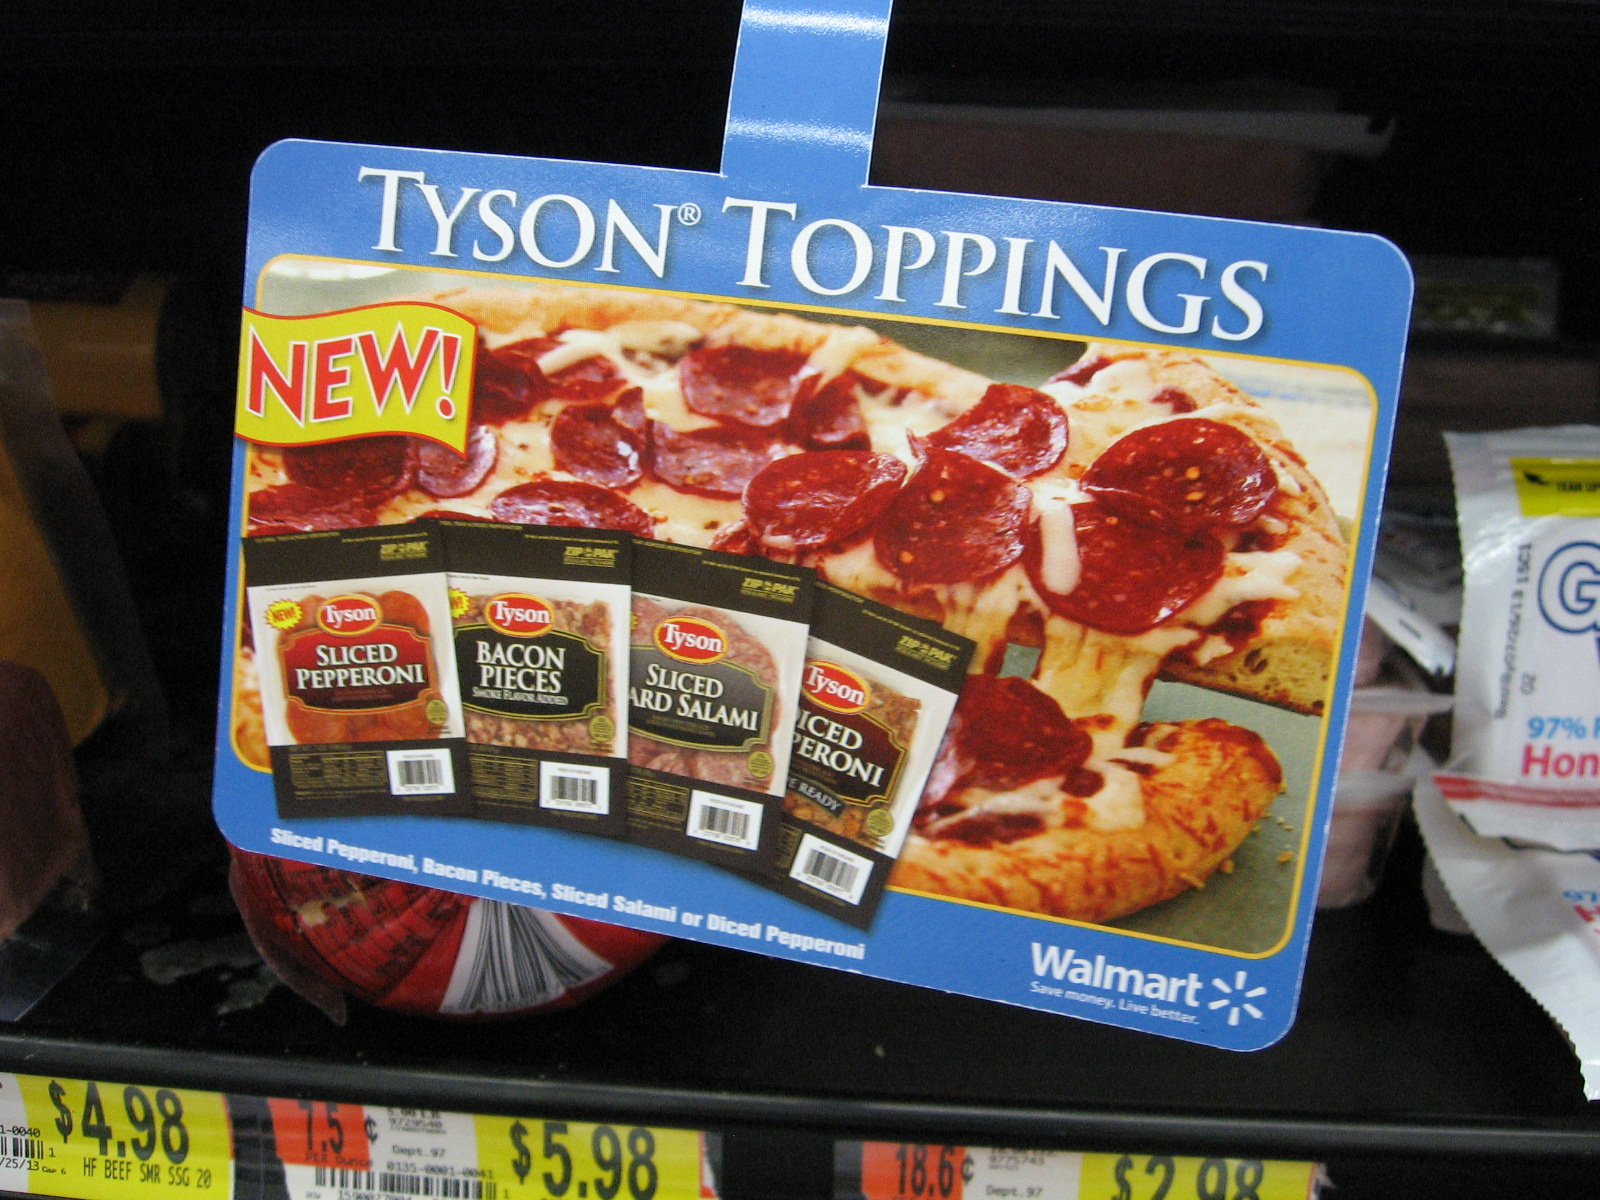 It always helps me to know what I'm looking for and what it looks like. These directional signs with all four varieties of Tyson Toppings made that easy at Walmart.